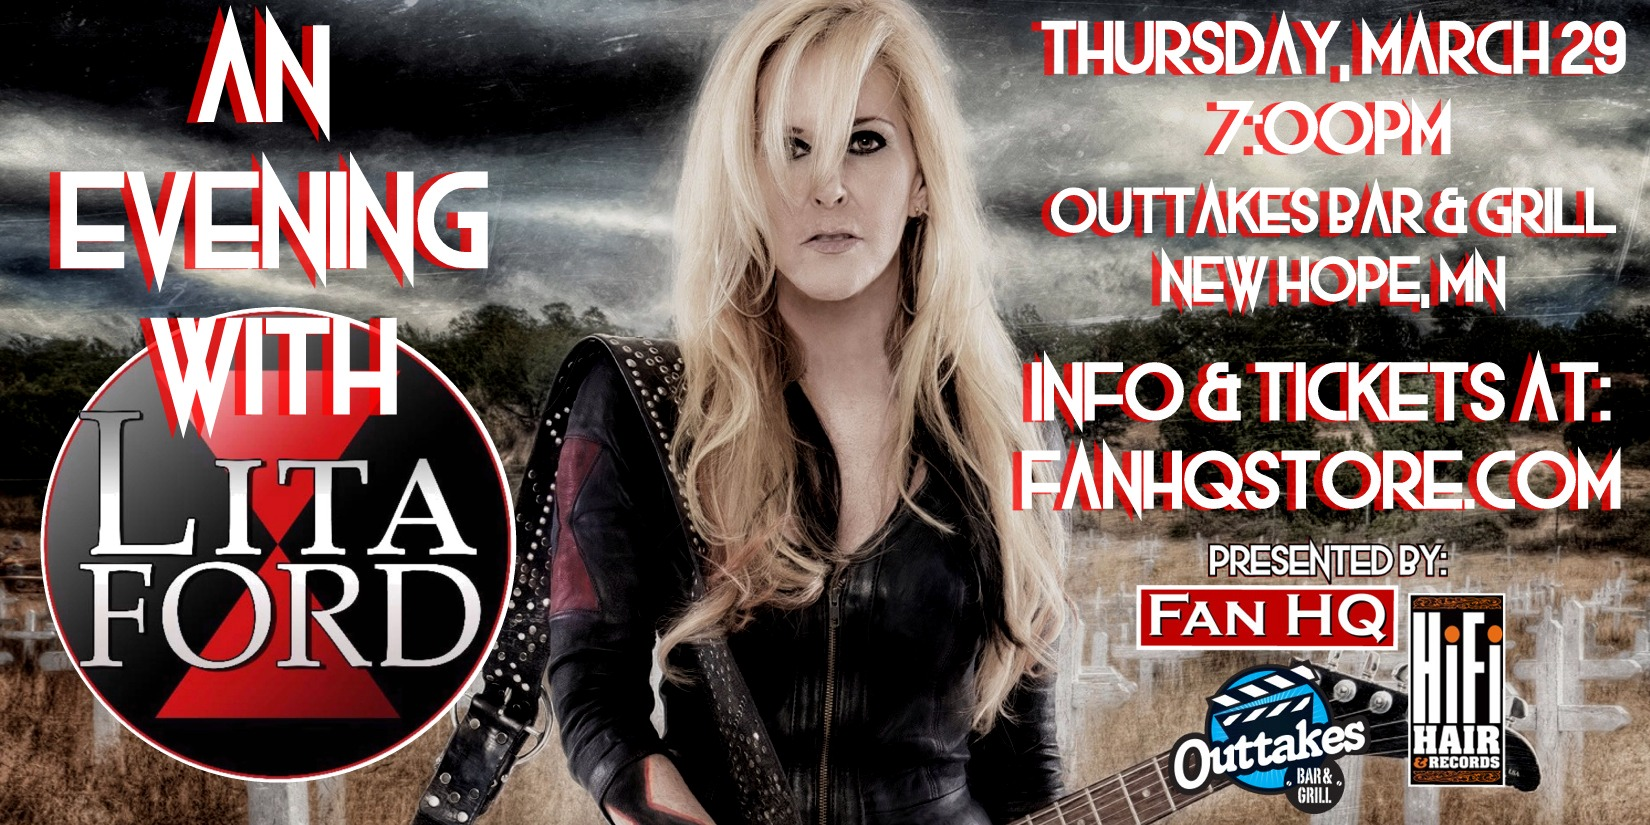 Evening with Lita Ford Twitter